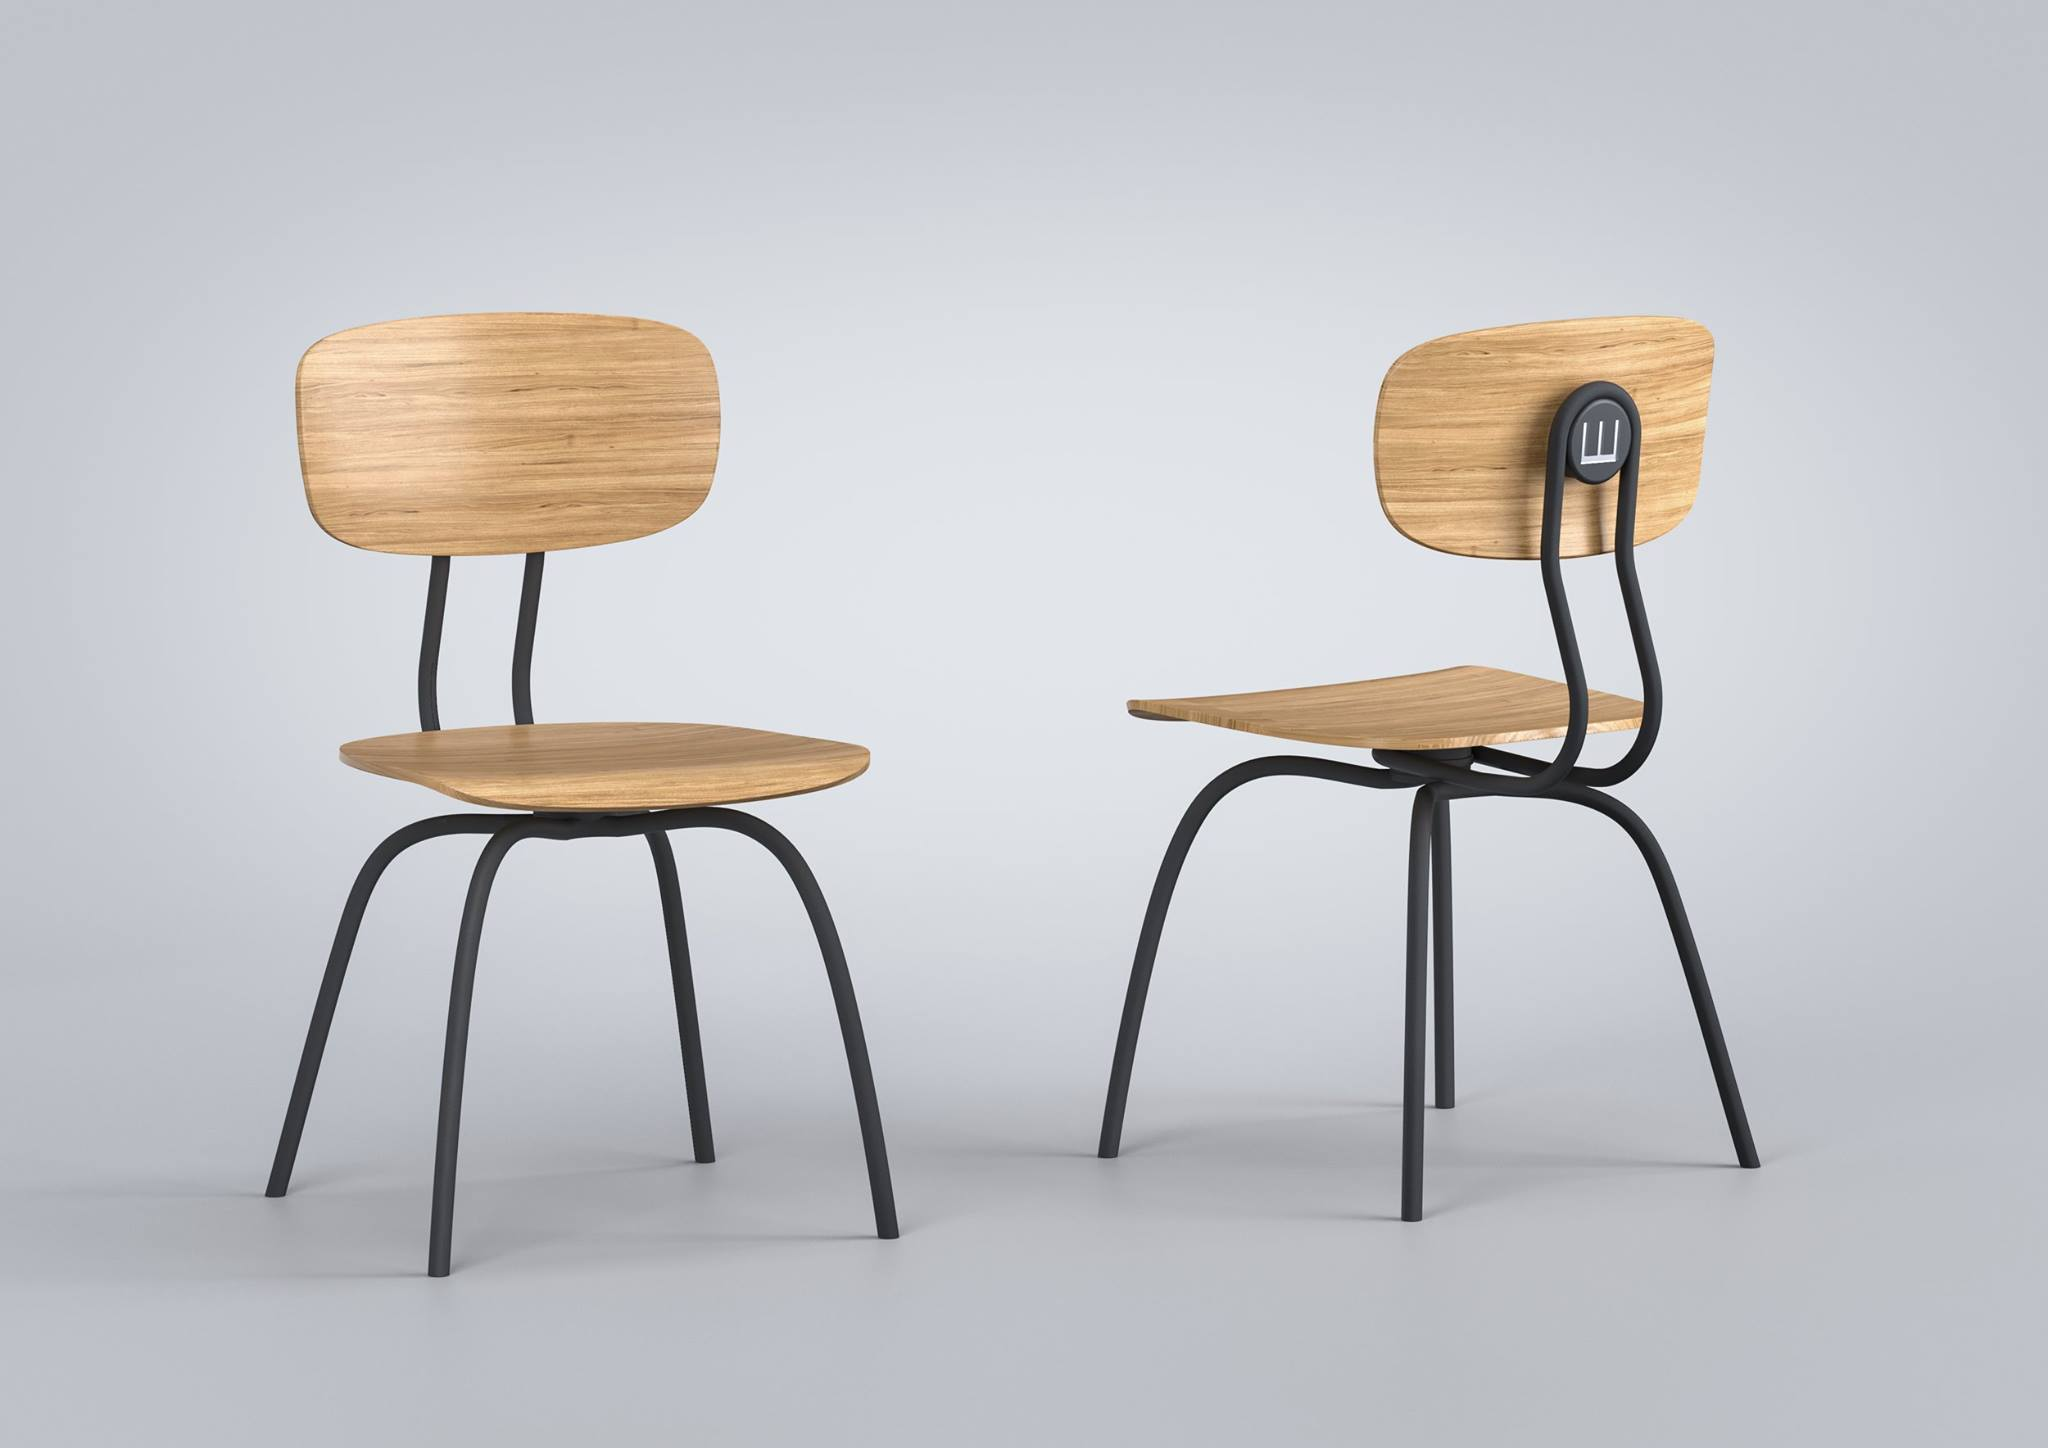 W-1970 Chair by Florian Kienast for Wagner